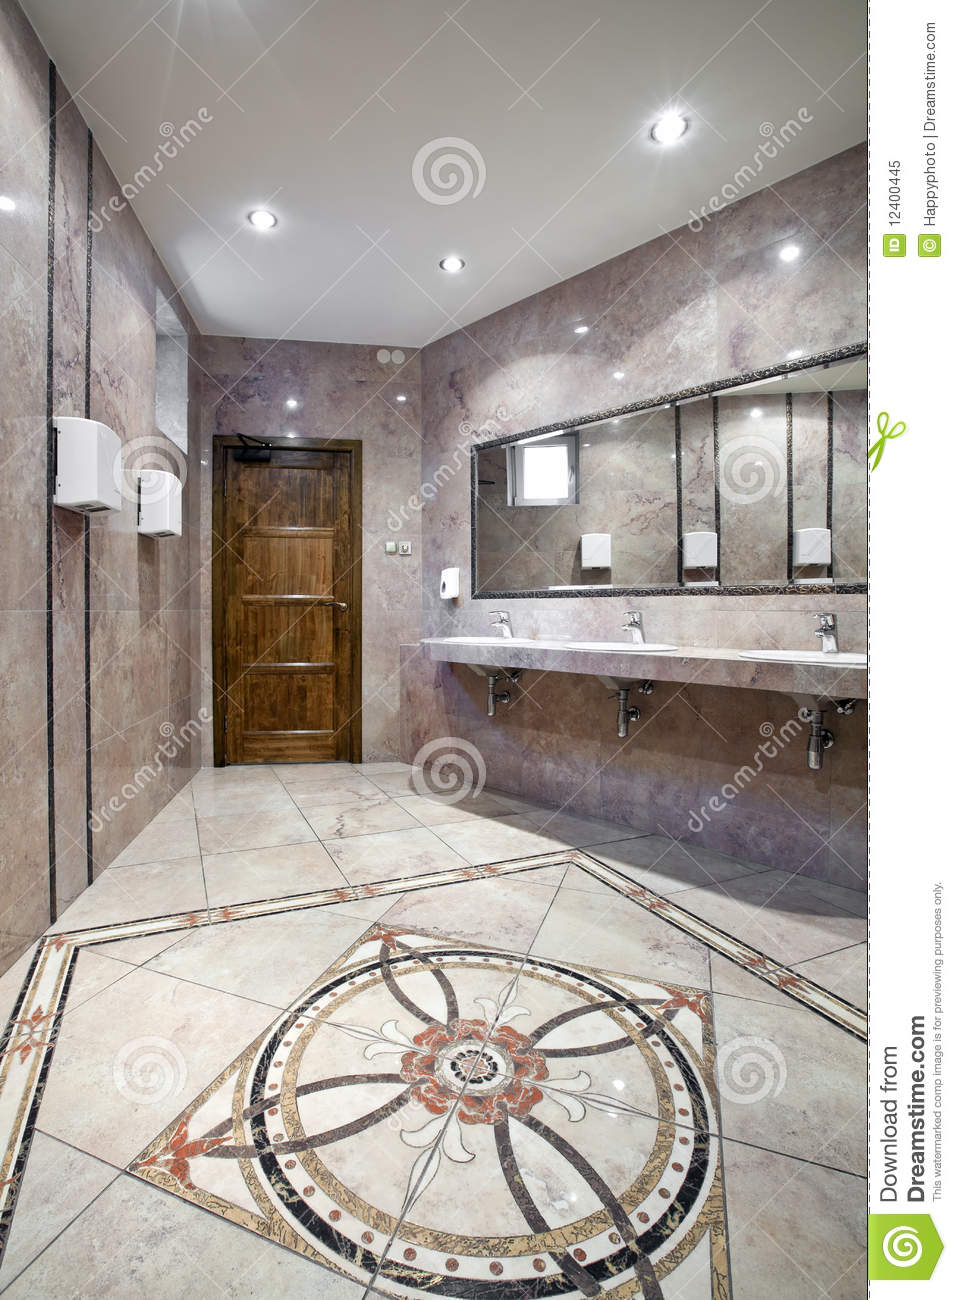 Interior Of A Luxury Public Restroom Mr No Pr No 0 626 0